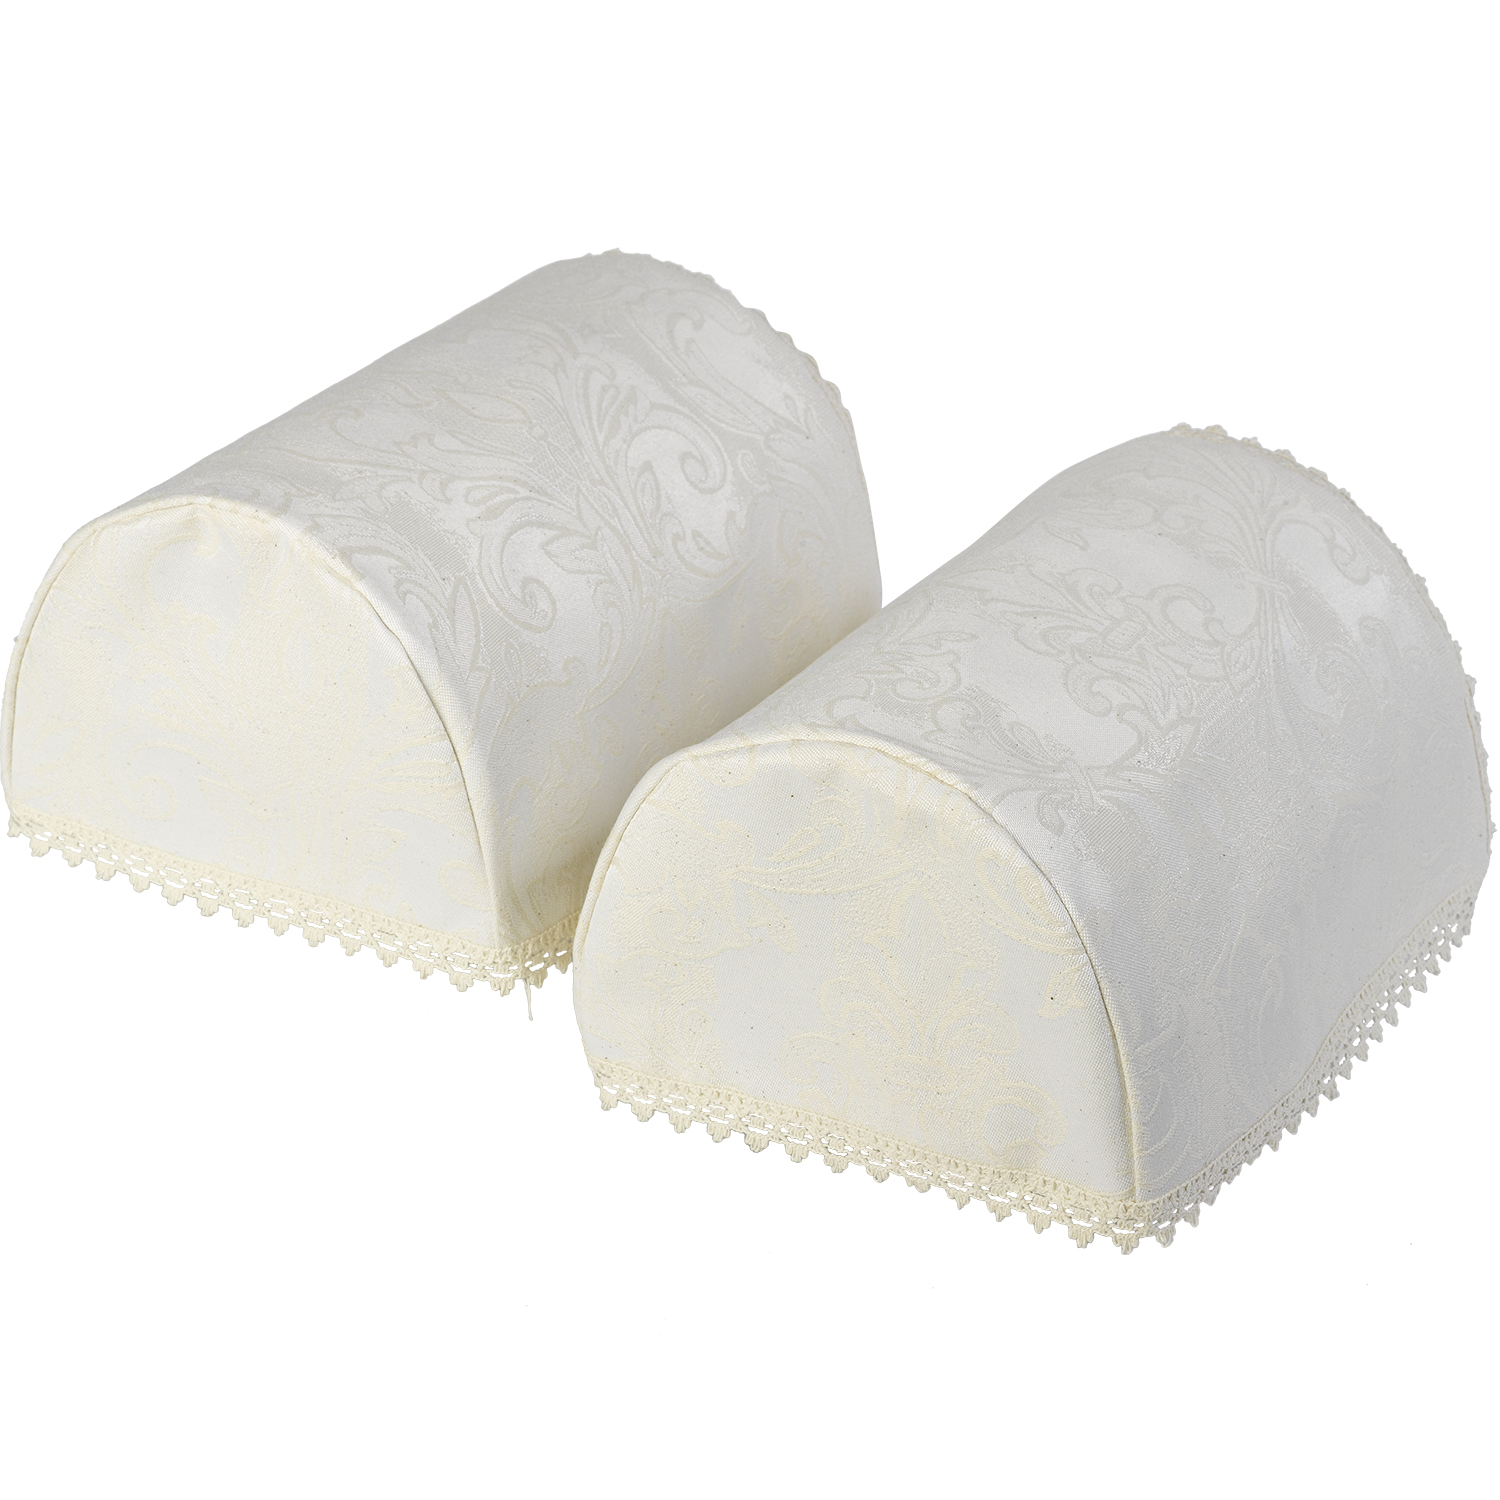 chair arm protectors pattern ikea padded covers cream decorative jacquard damask caps round or square